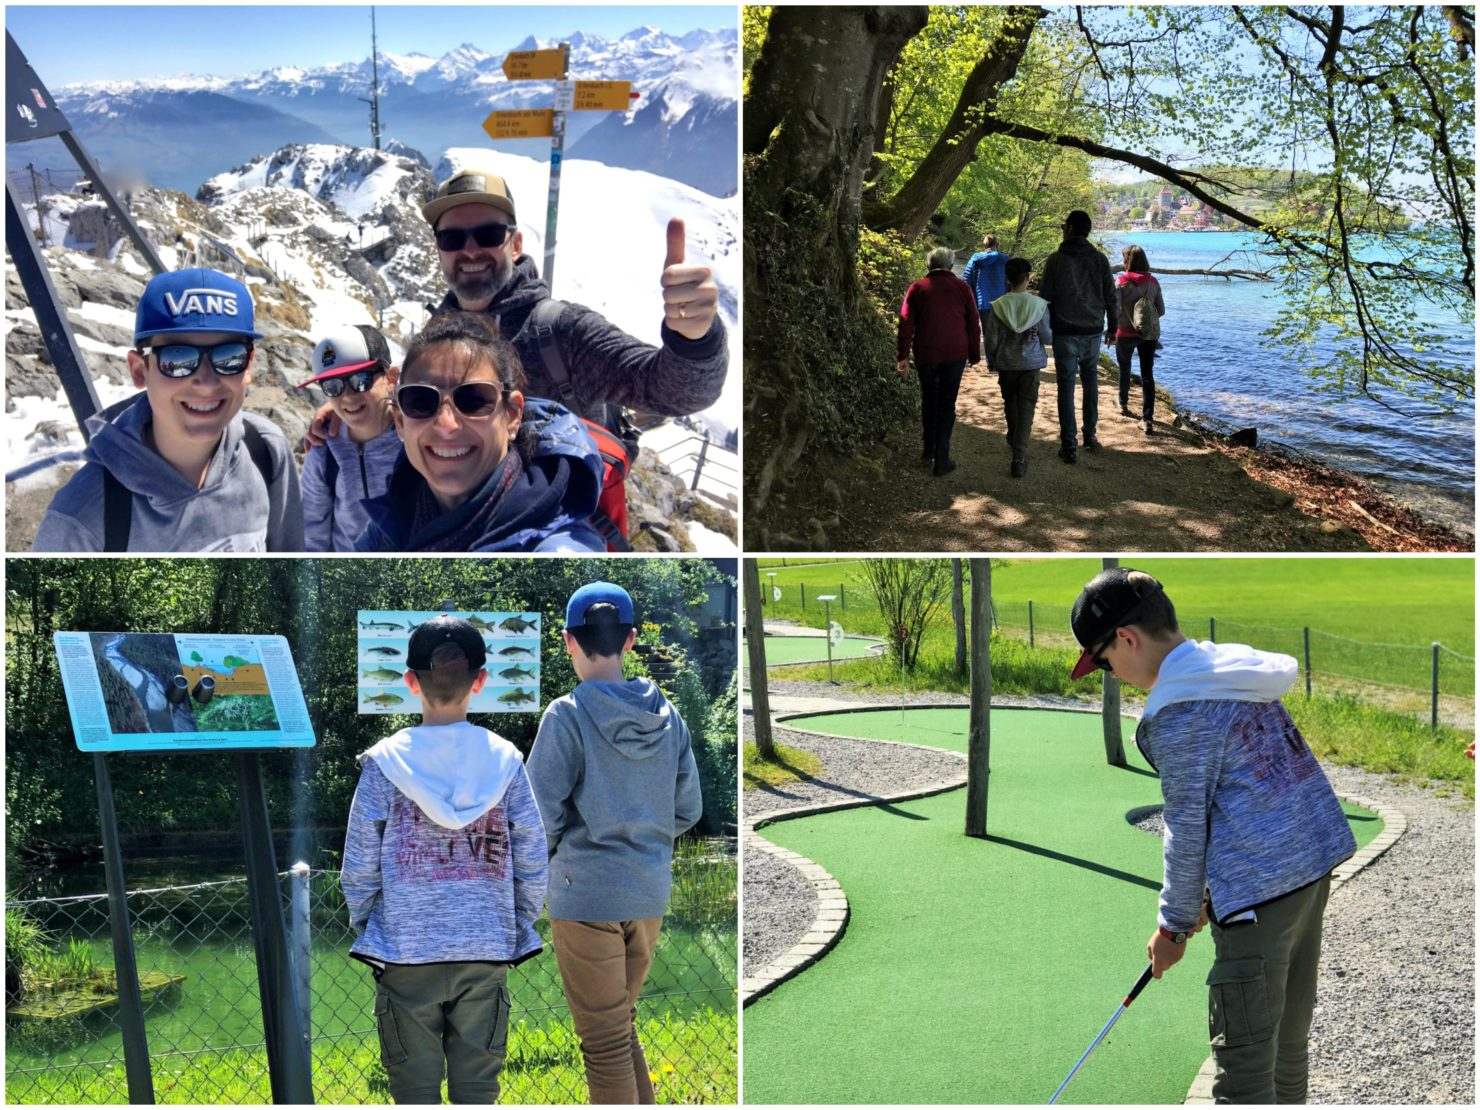 TCS Camping Thun Glamping in den Swiss Tubes und Besuch des Stockhorns